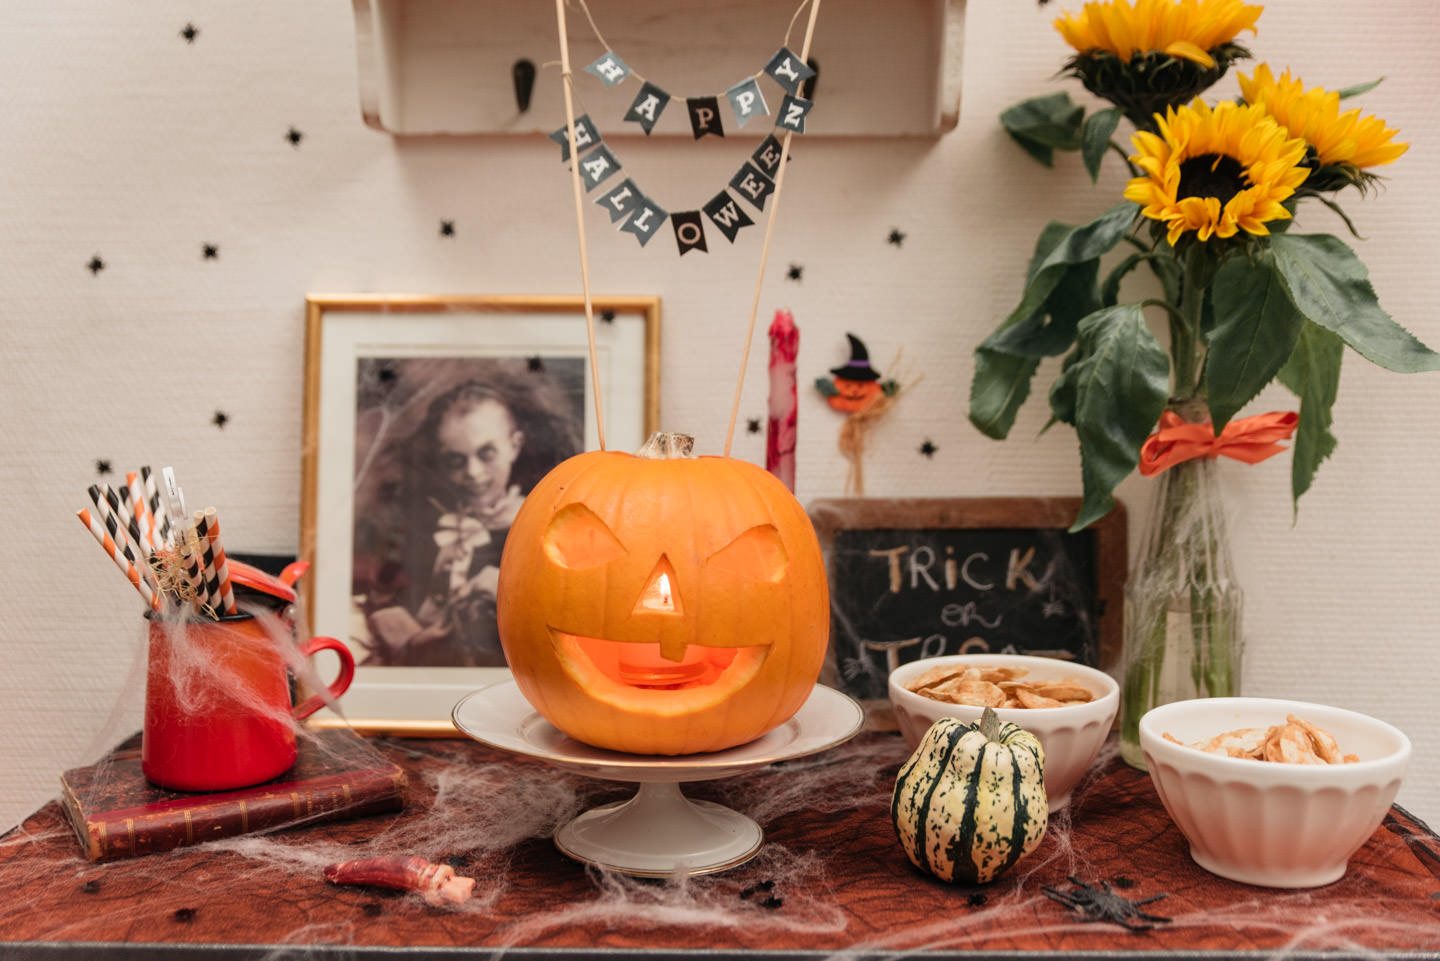 Blog-Mode-And-The-City-Lifestyle-Halloween-2017-8